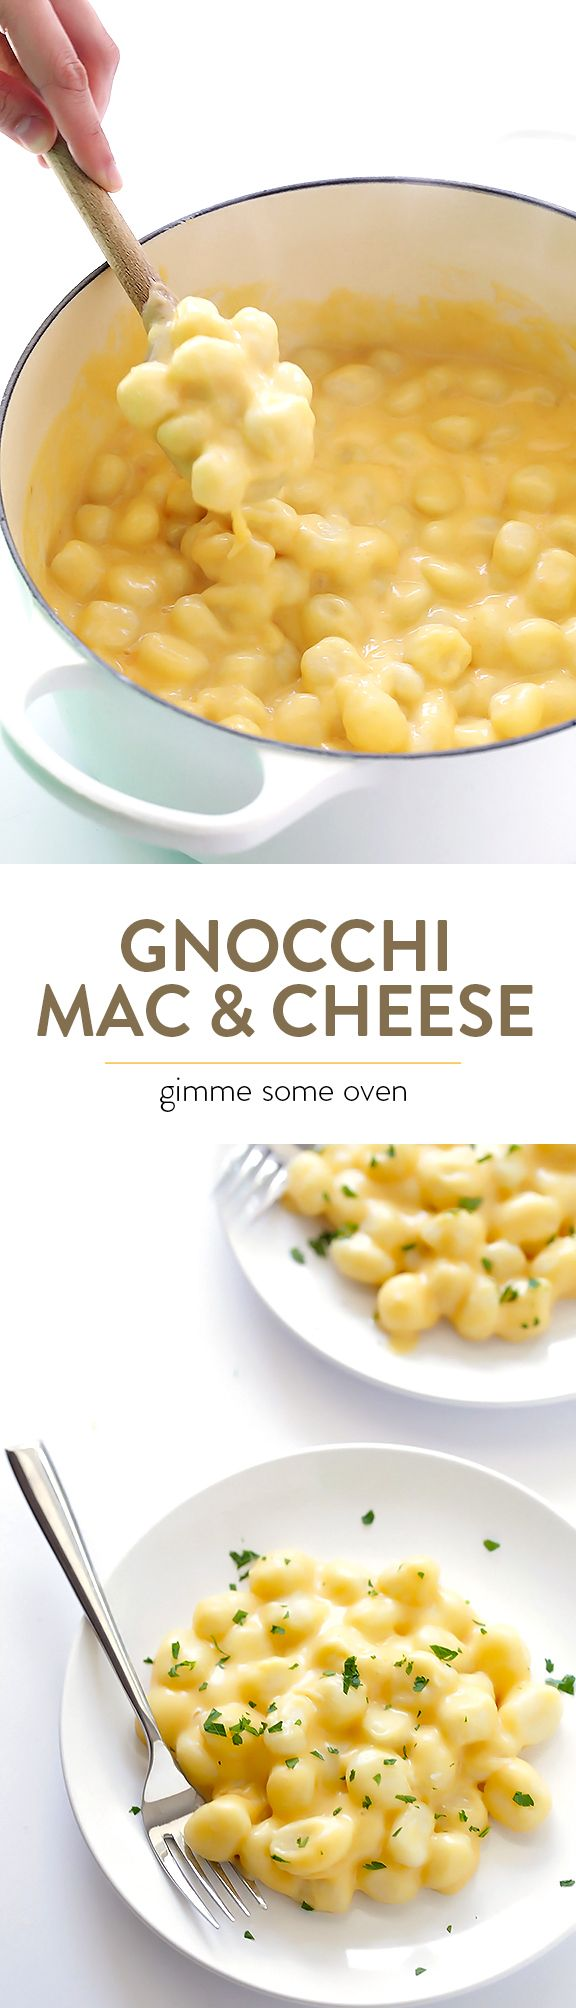 This Gnocchi Mac and Cheese recipe is rich creamy classic and oh-so-comforting and delicious.